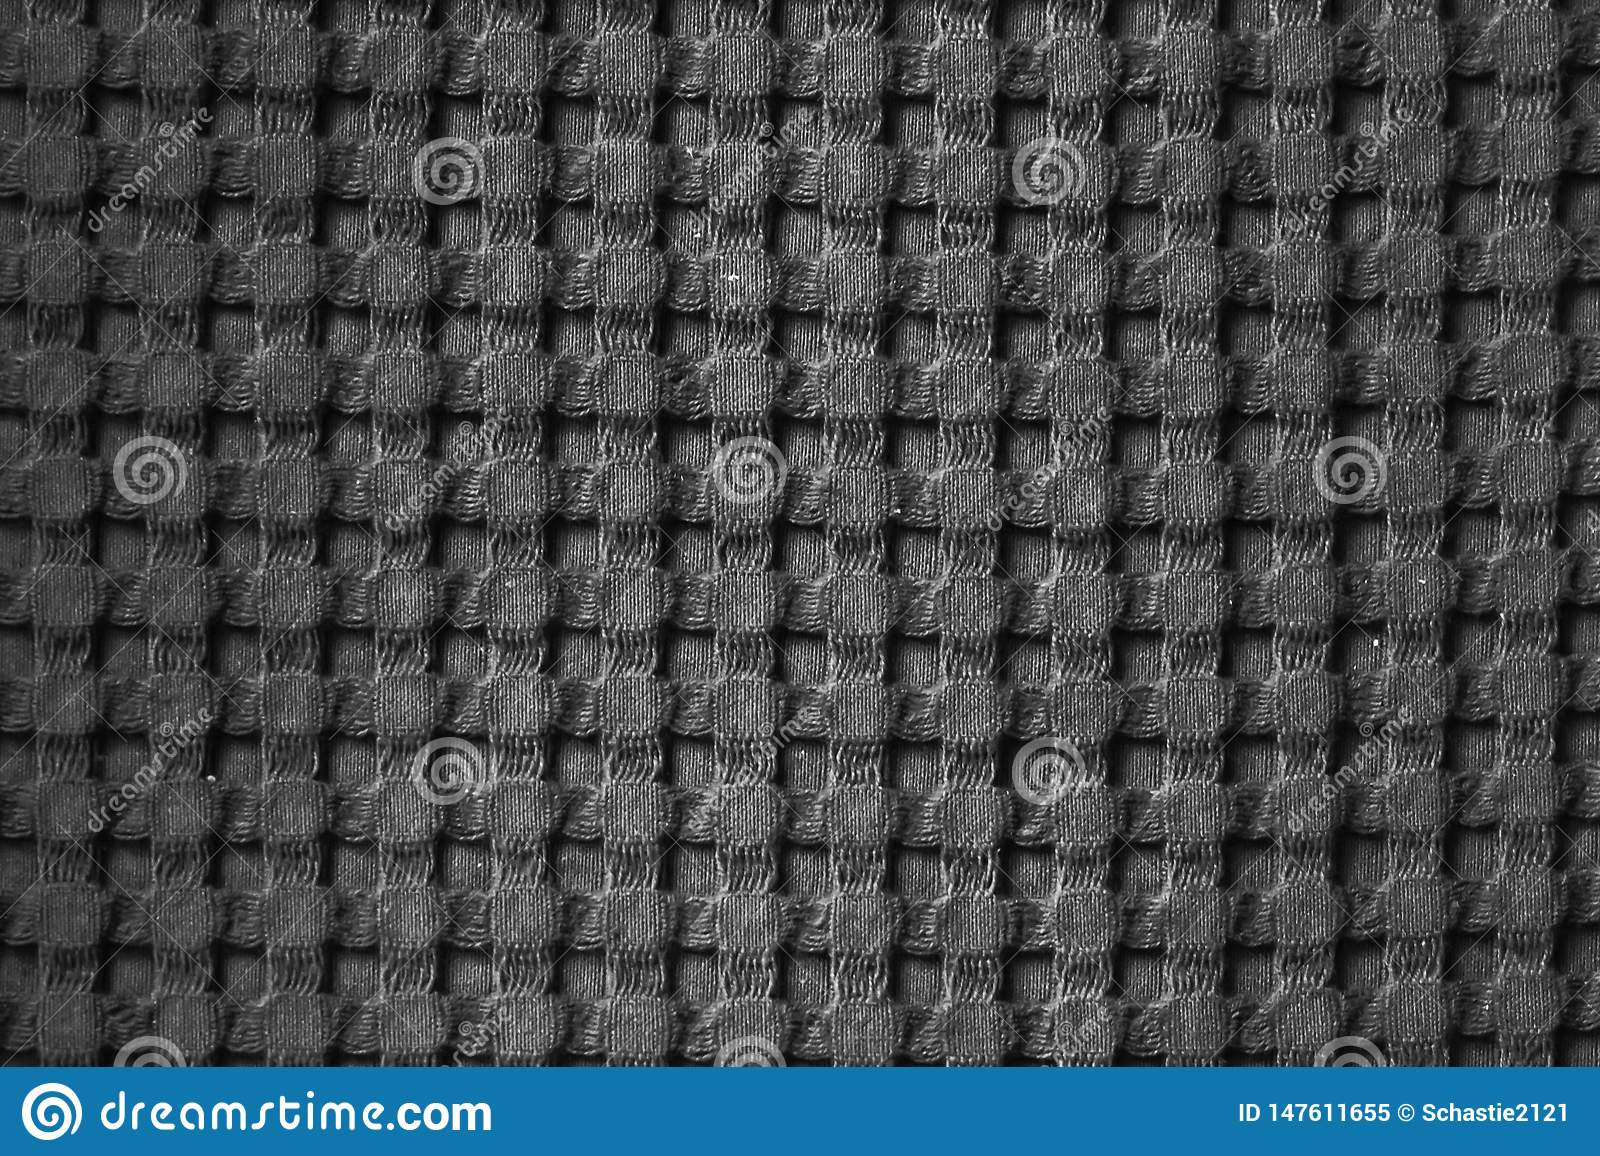 41 381 Fabric Drawing Photos Free Royalty Free Stock Photos From Dreamstime